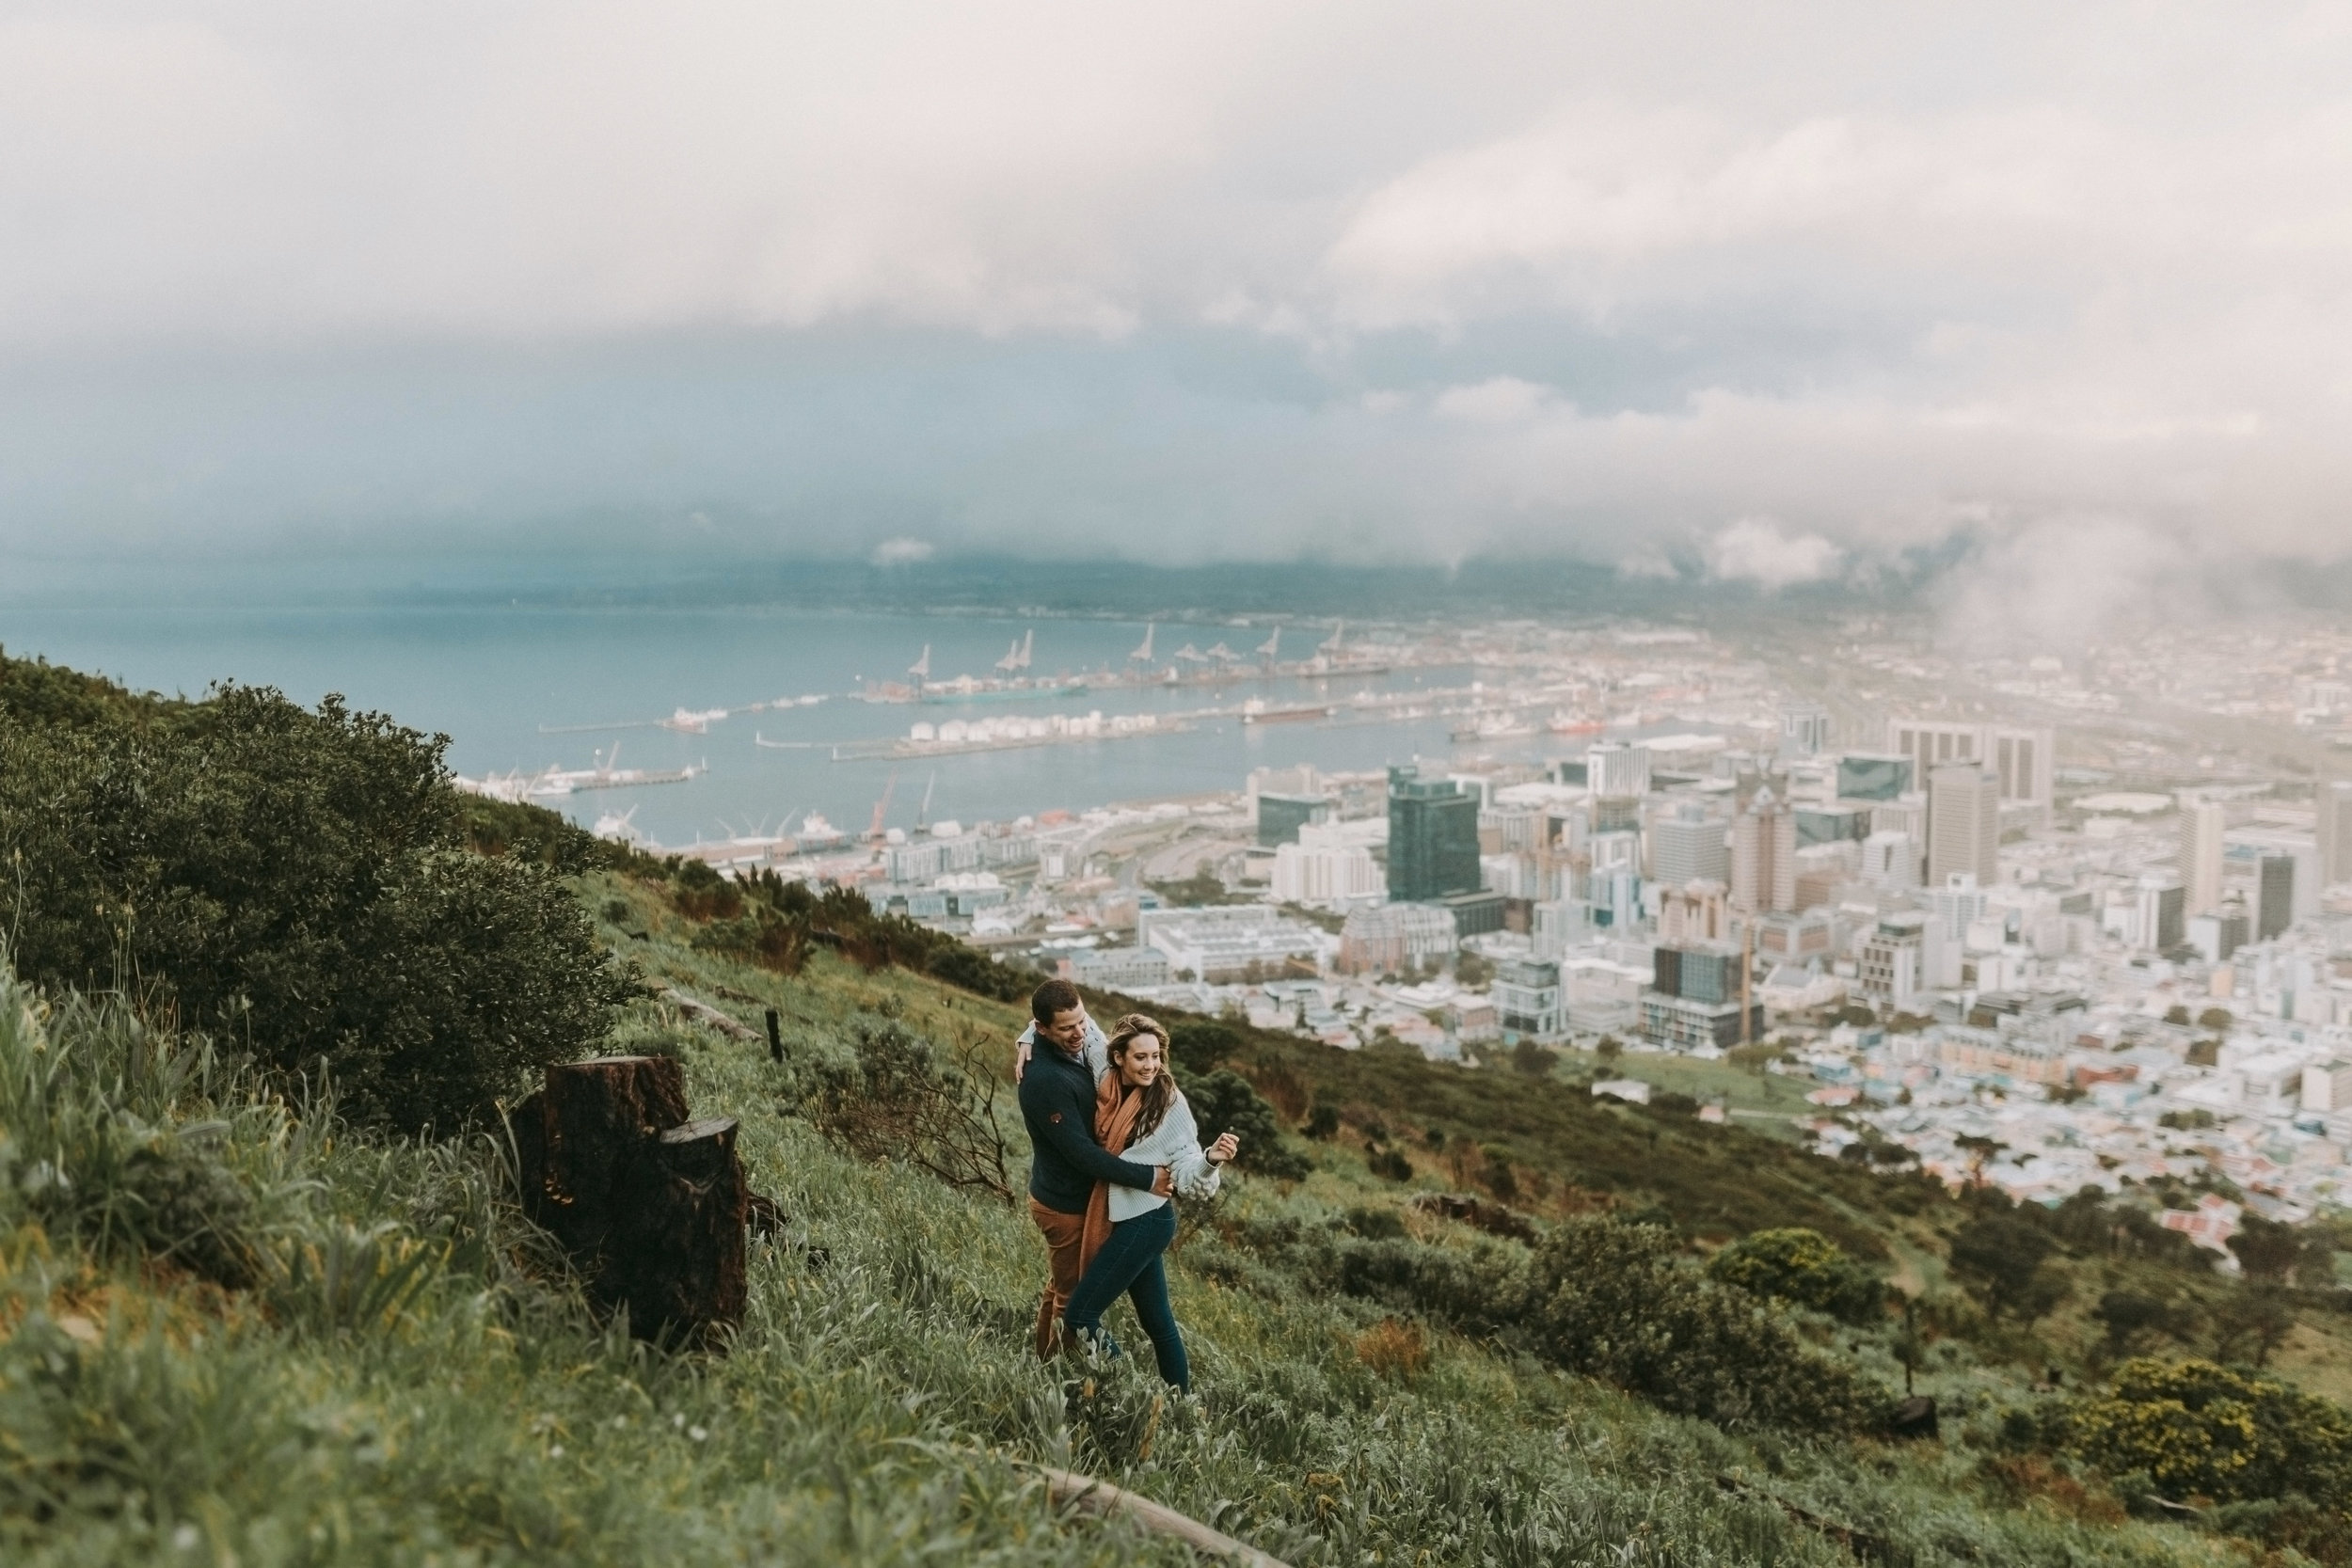 Cape Town Blanche B PhotographyIan & Carrie6 (2).JPG